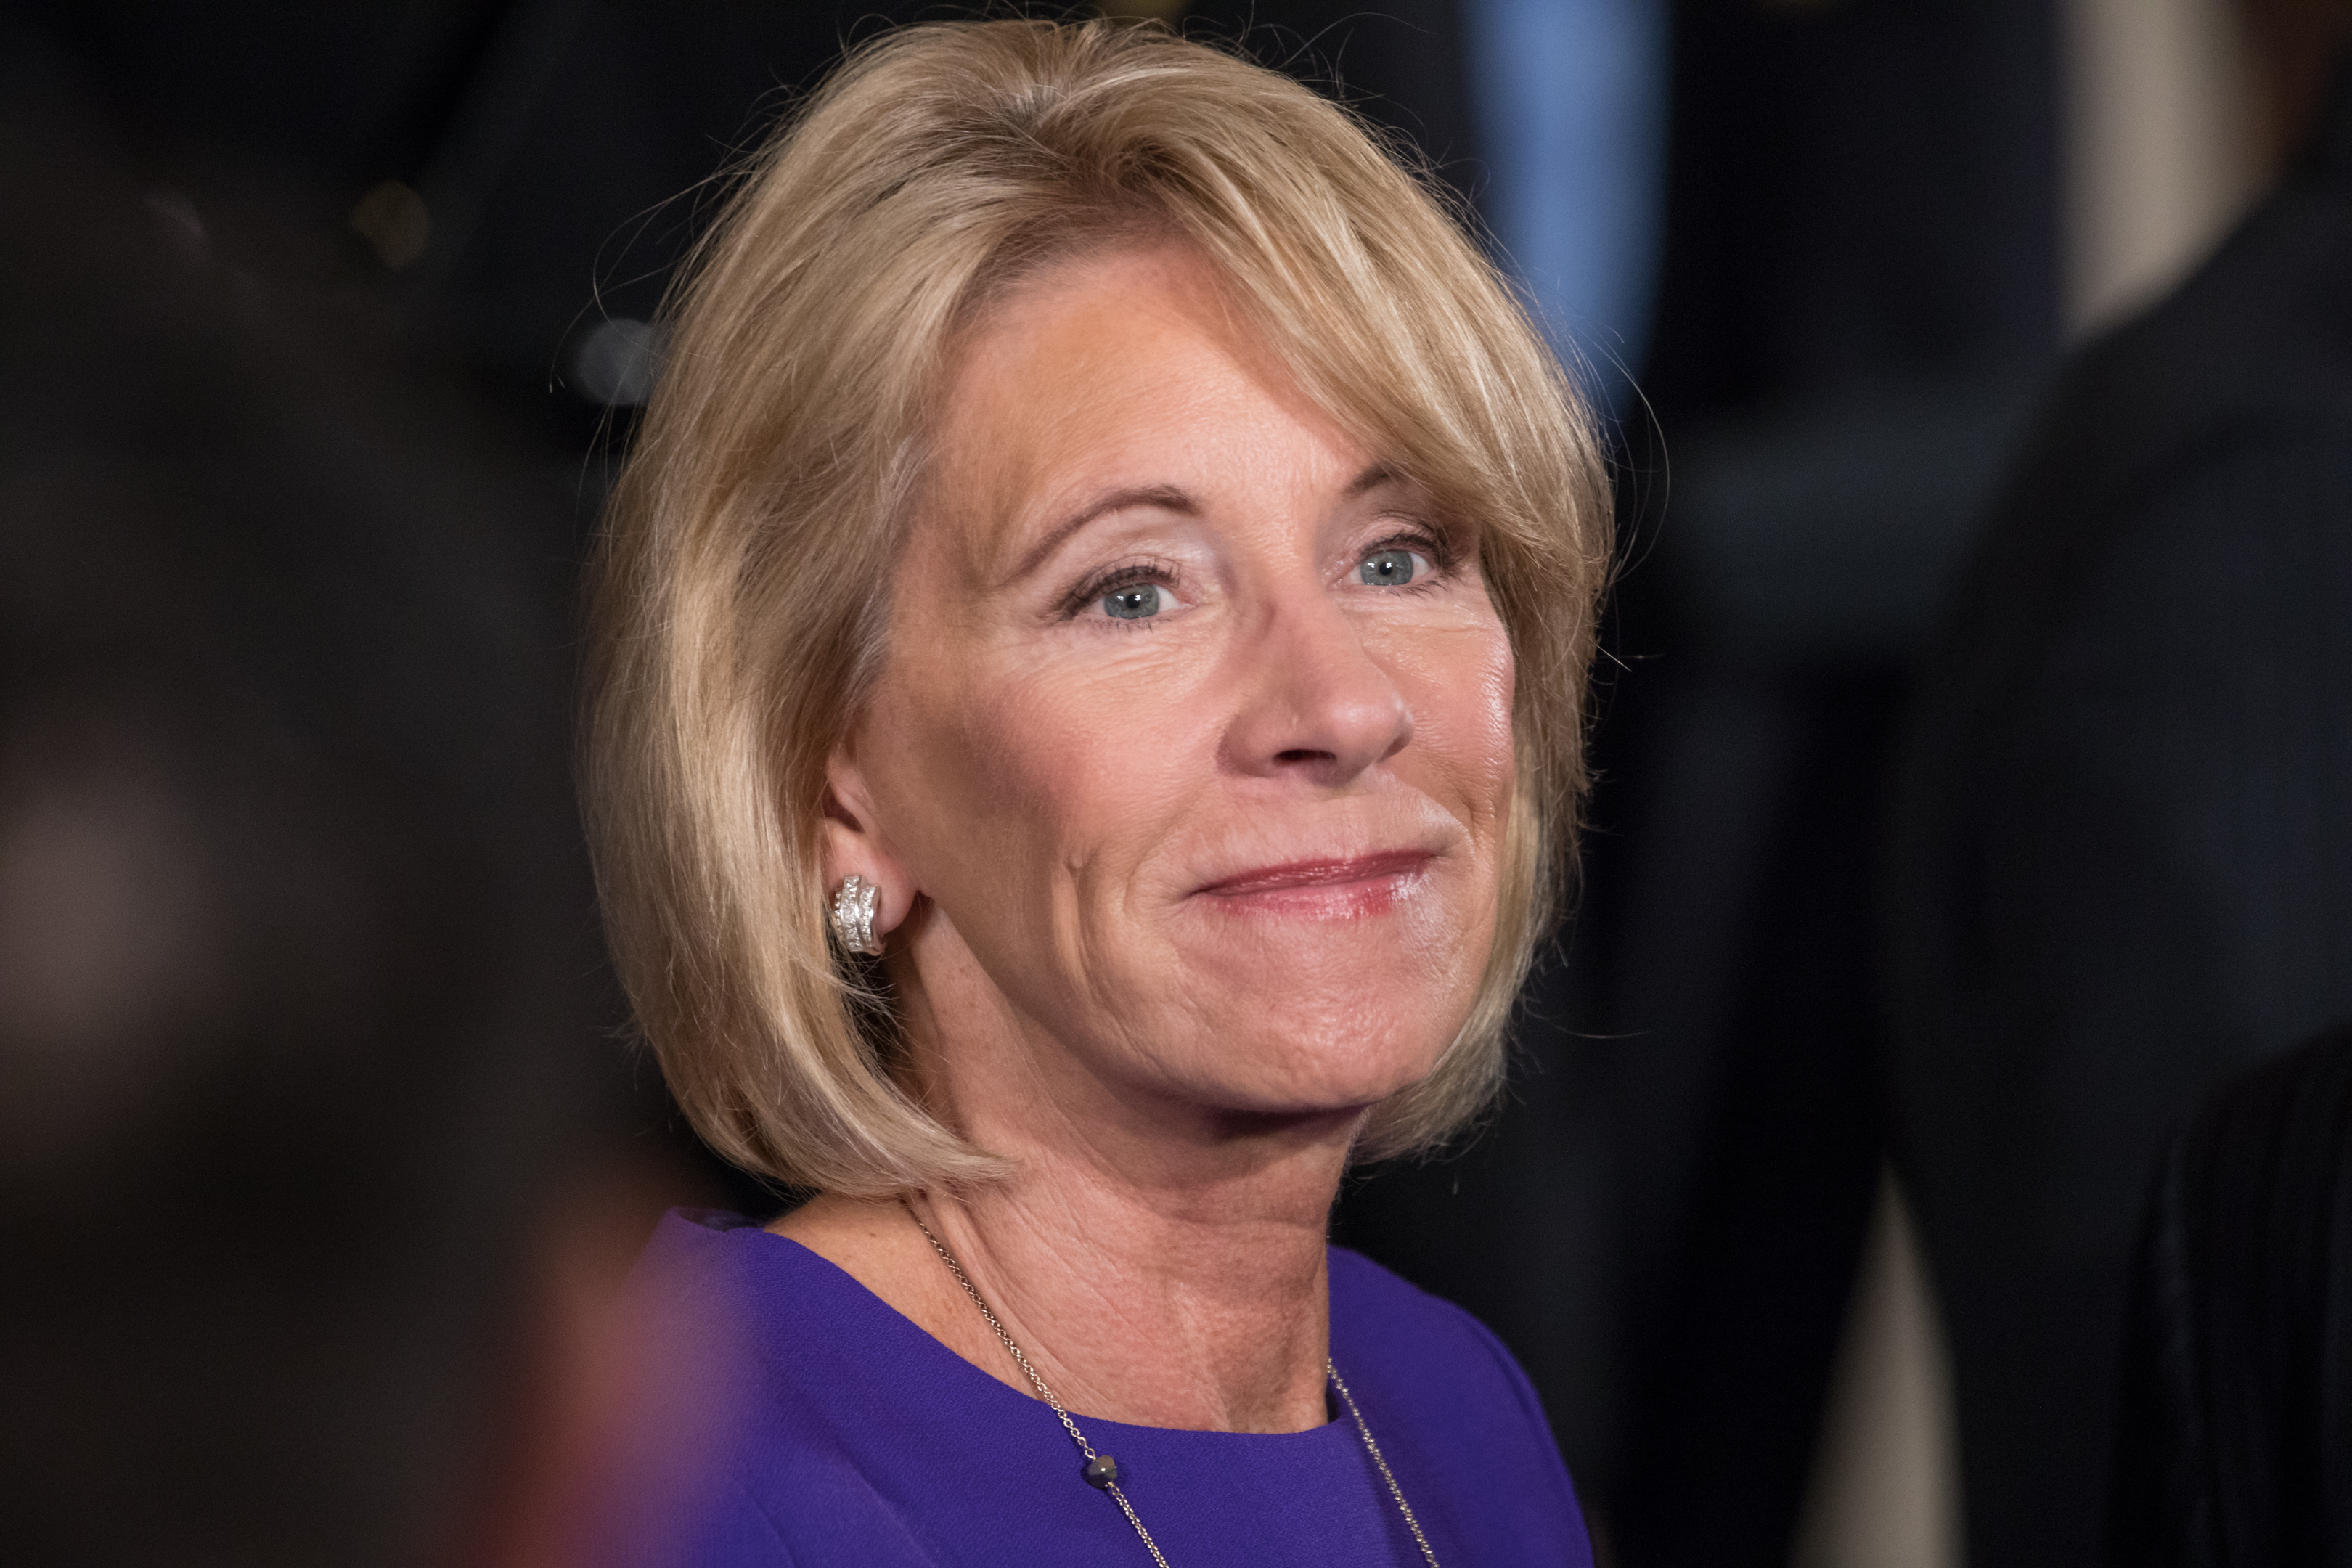 Education Secretary Betsy DeVos was in attendance at President Donald Trump's event on combatting drug demand and the opioid crisis at the White House on Oct. 26, 2017.